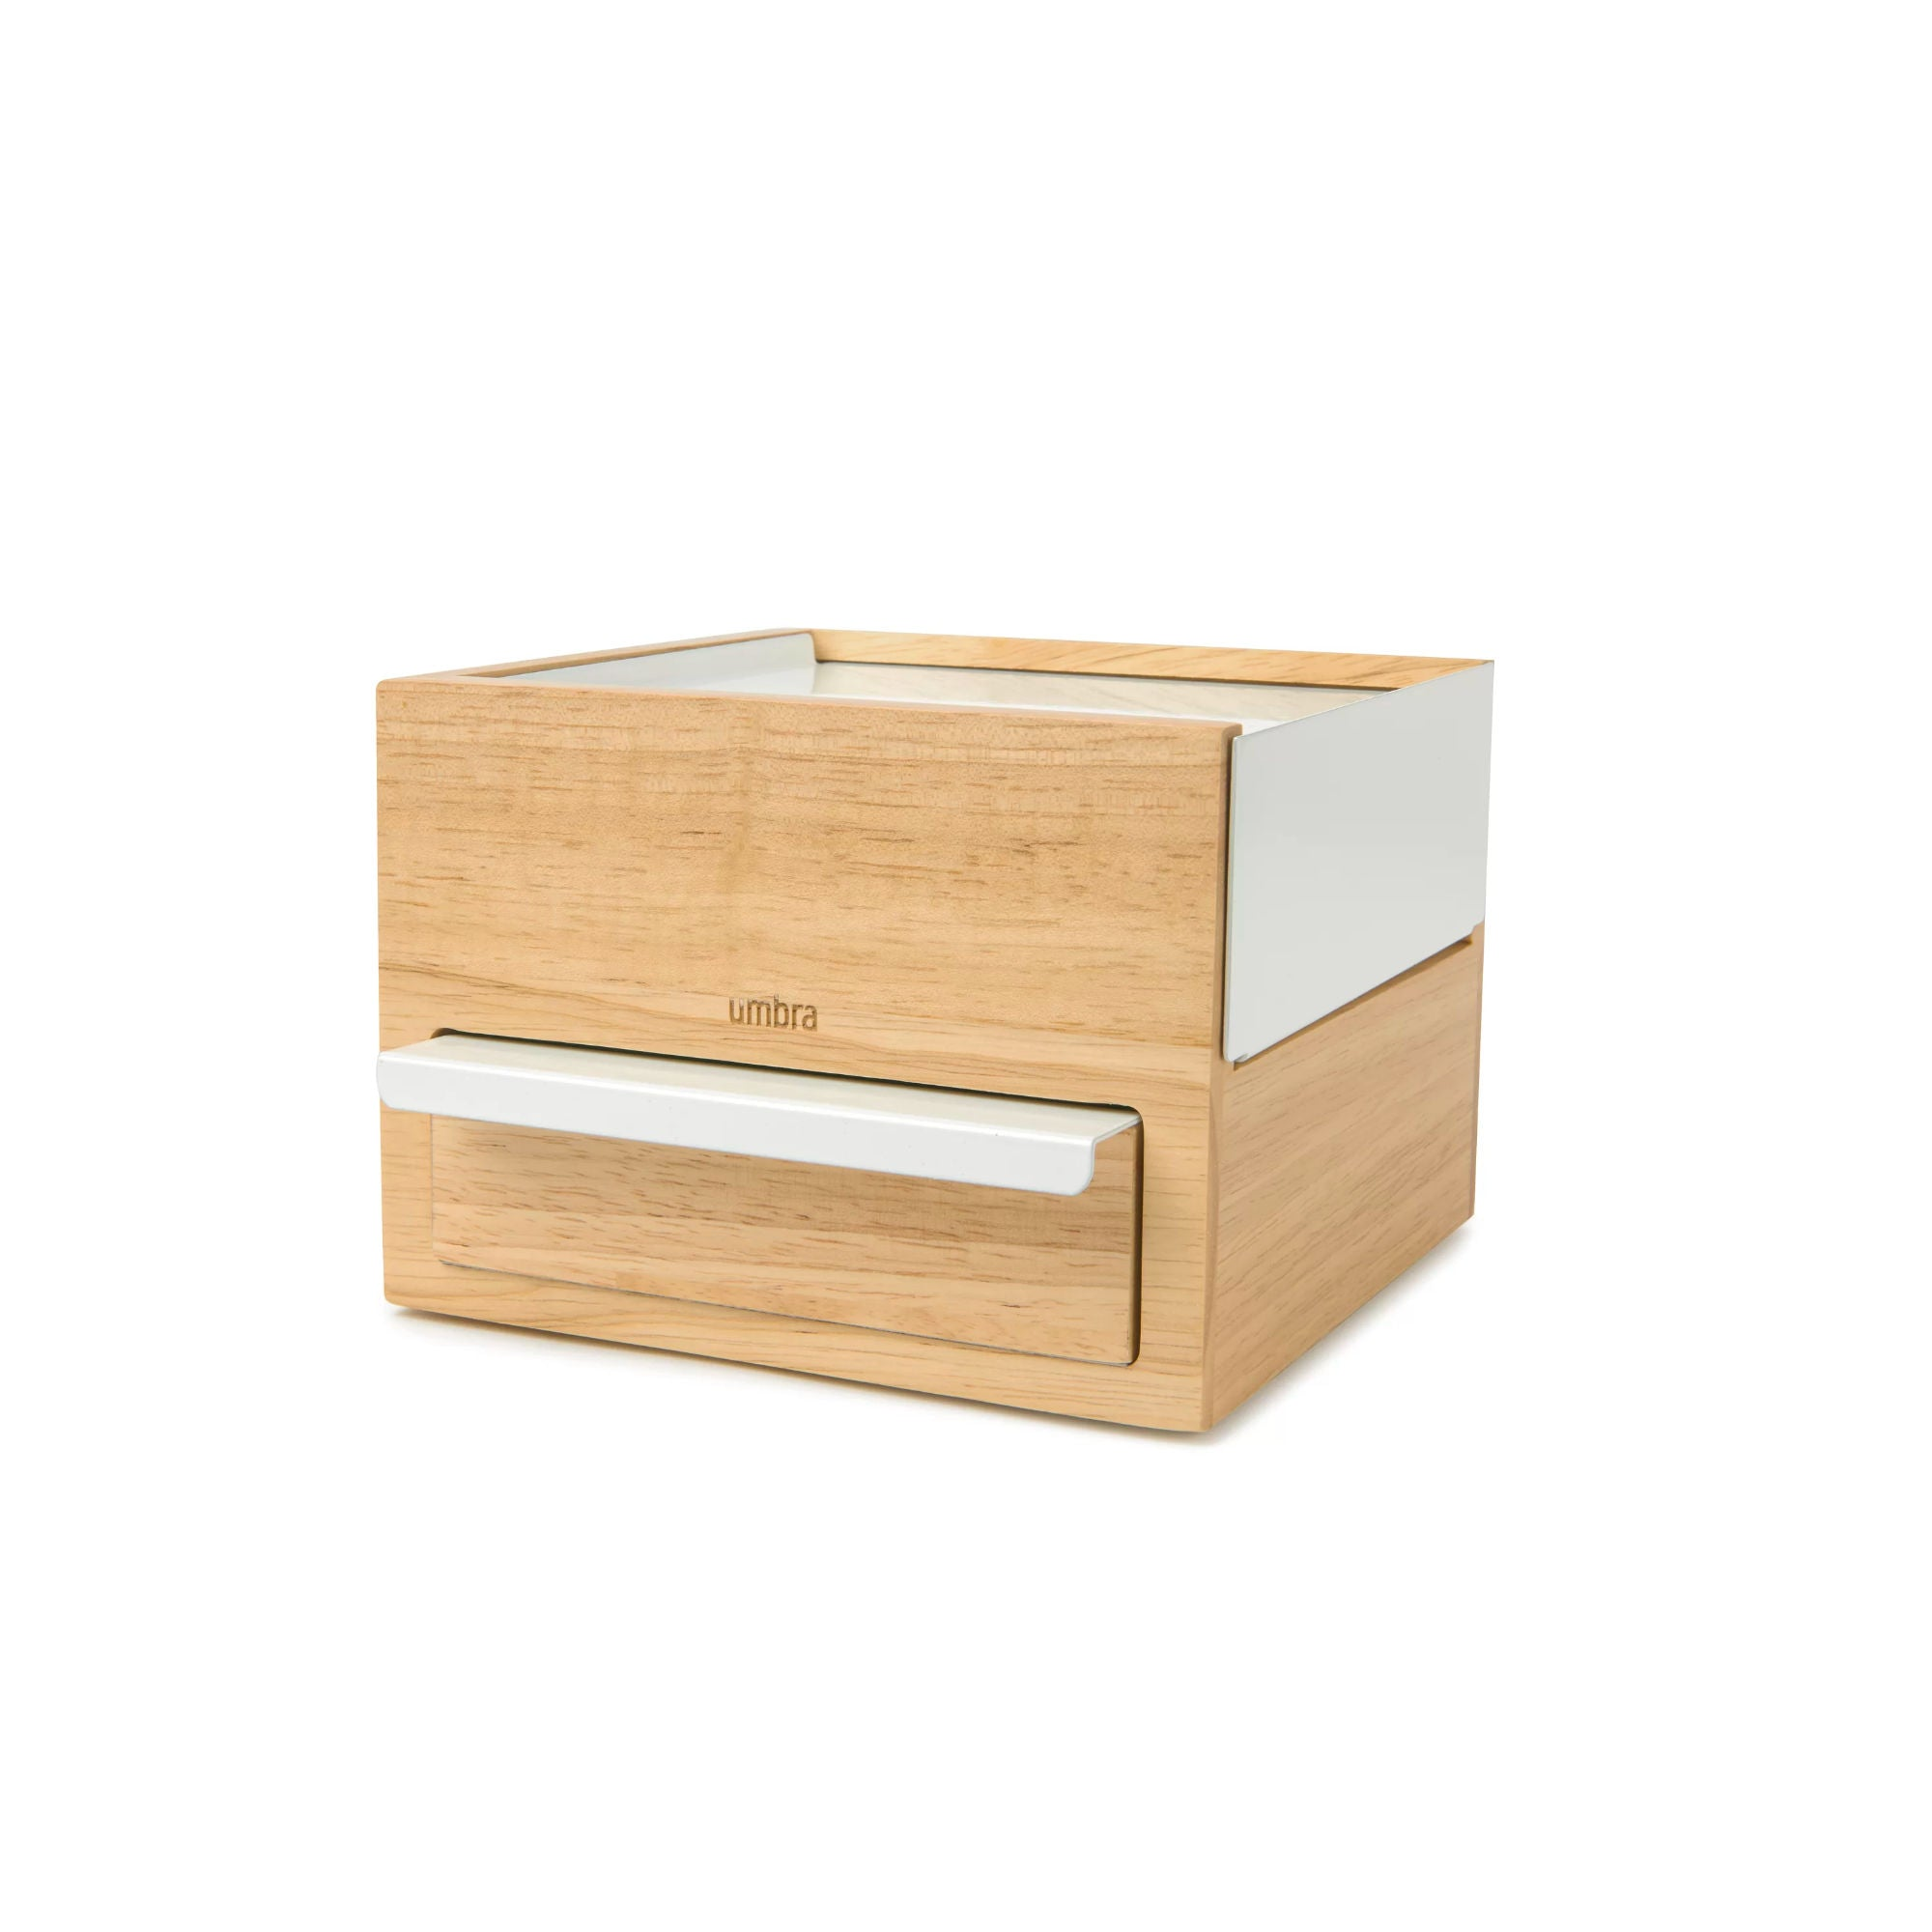 Stowit jewelry box natural, mini